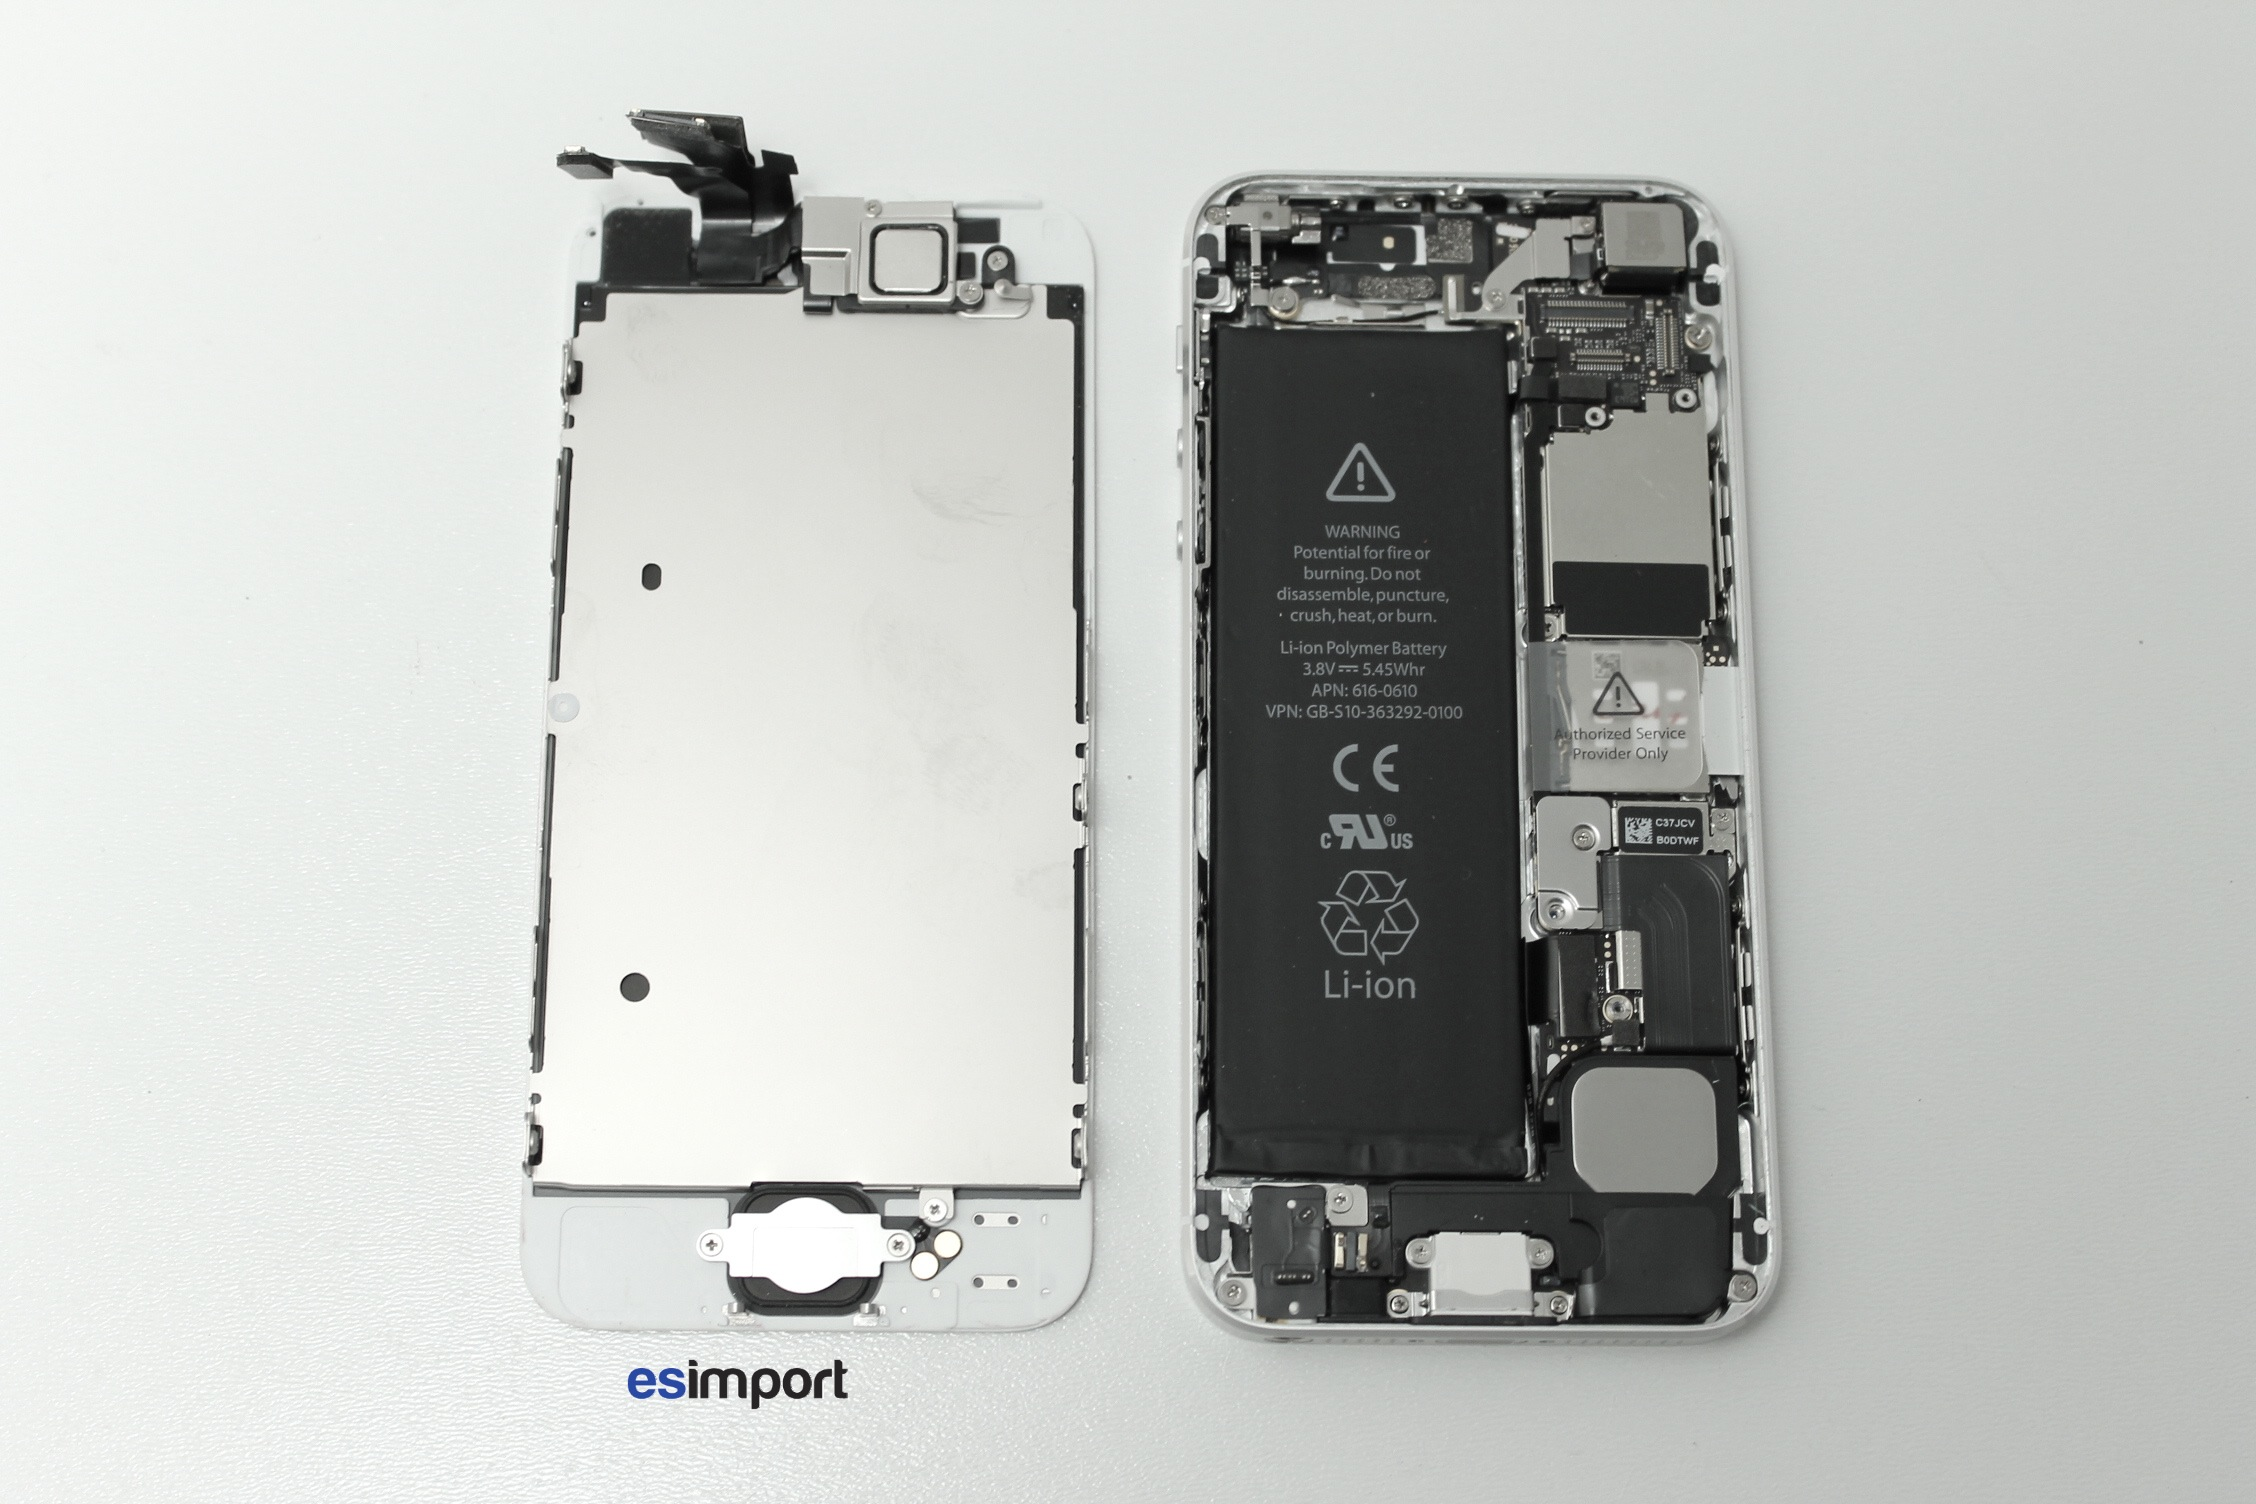 démonter un iphone 5s